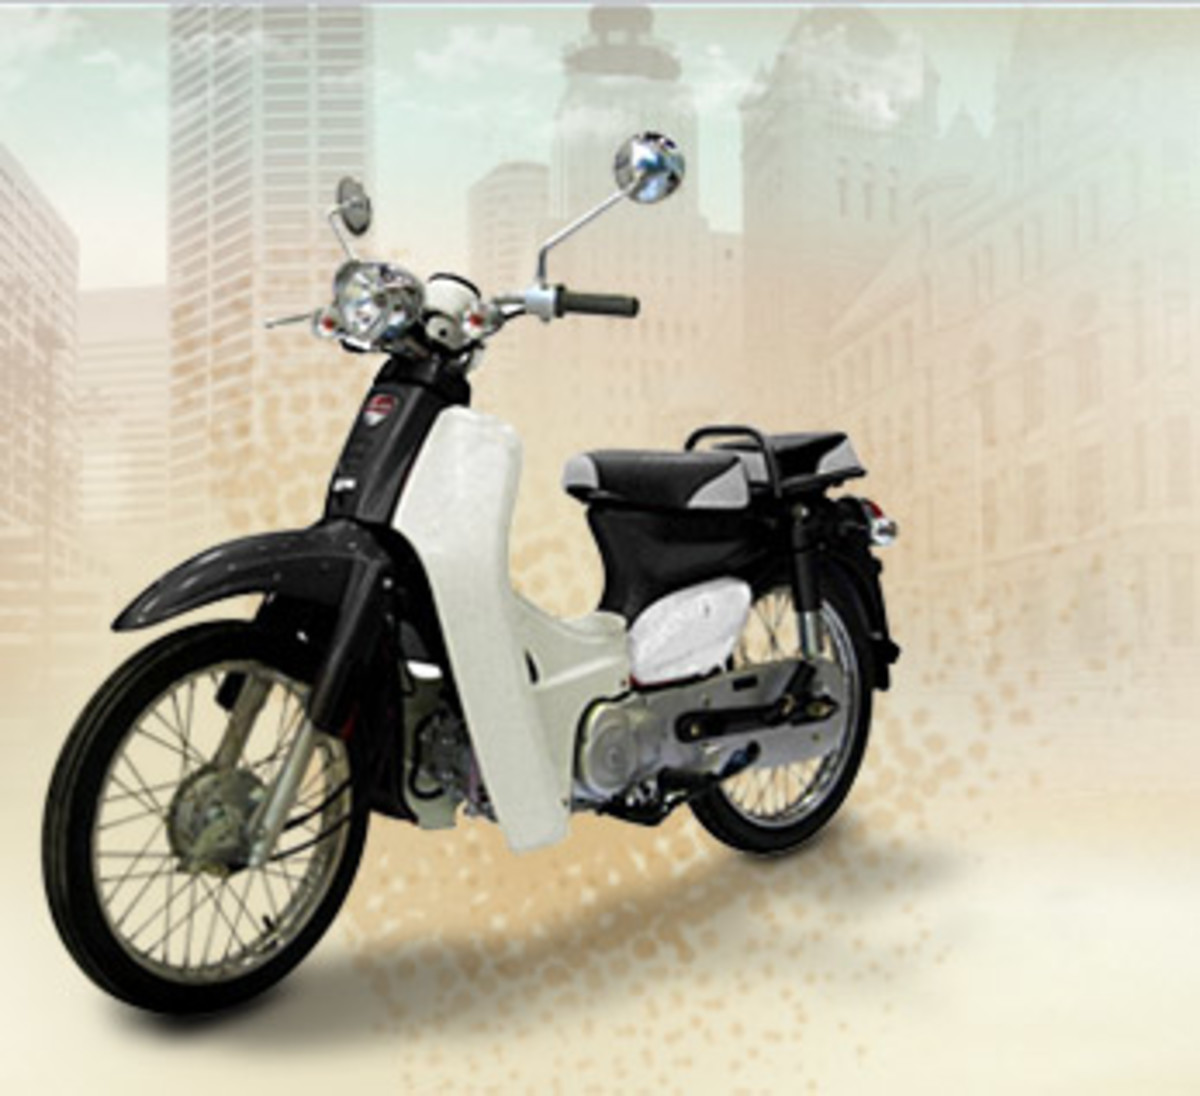 SYM Symba 101cc Scooter Review